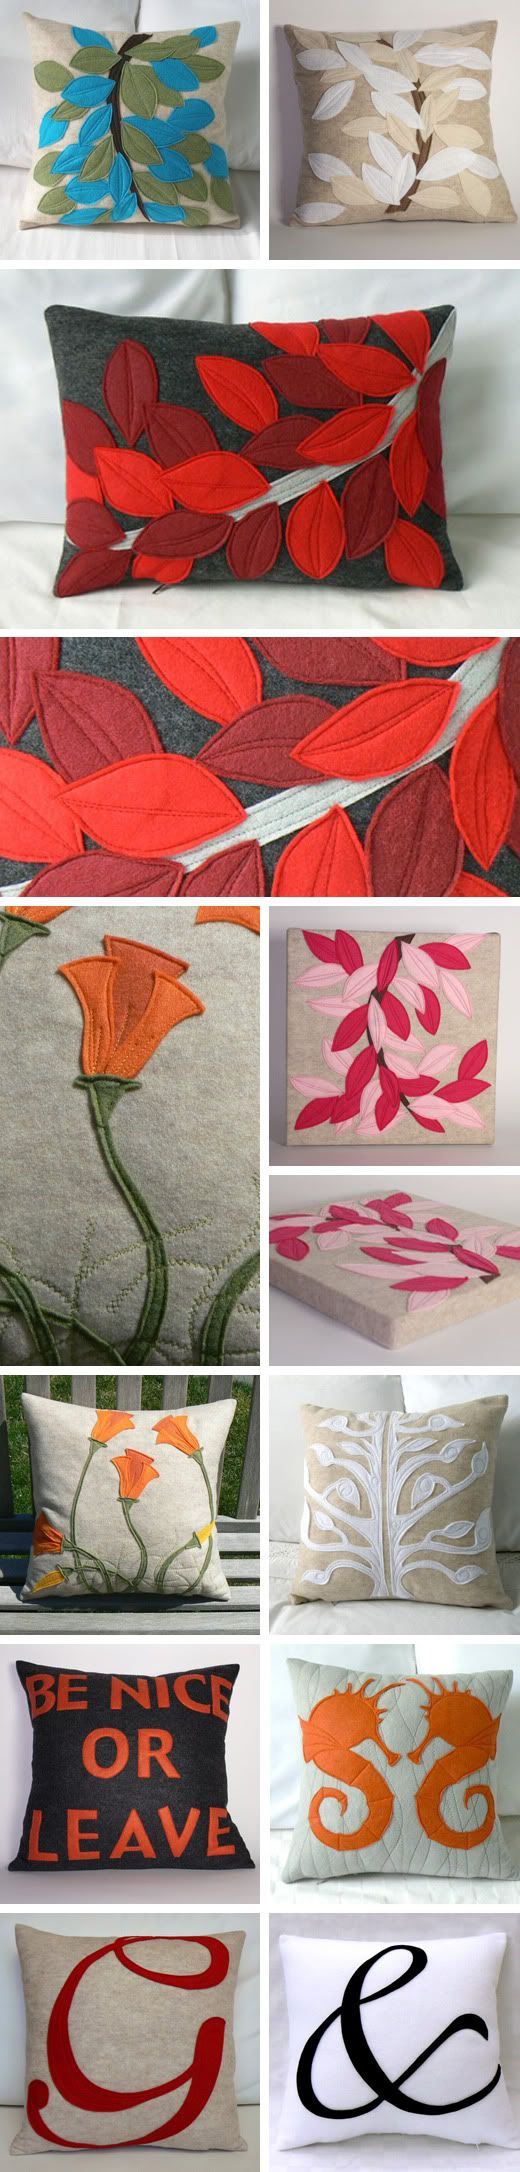 Traditionally Modern Designs: Mother's Day. Felt applique sewn leaf or nature pillows. I must re-create these!